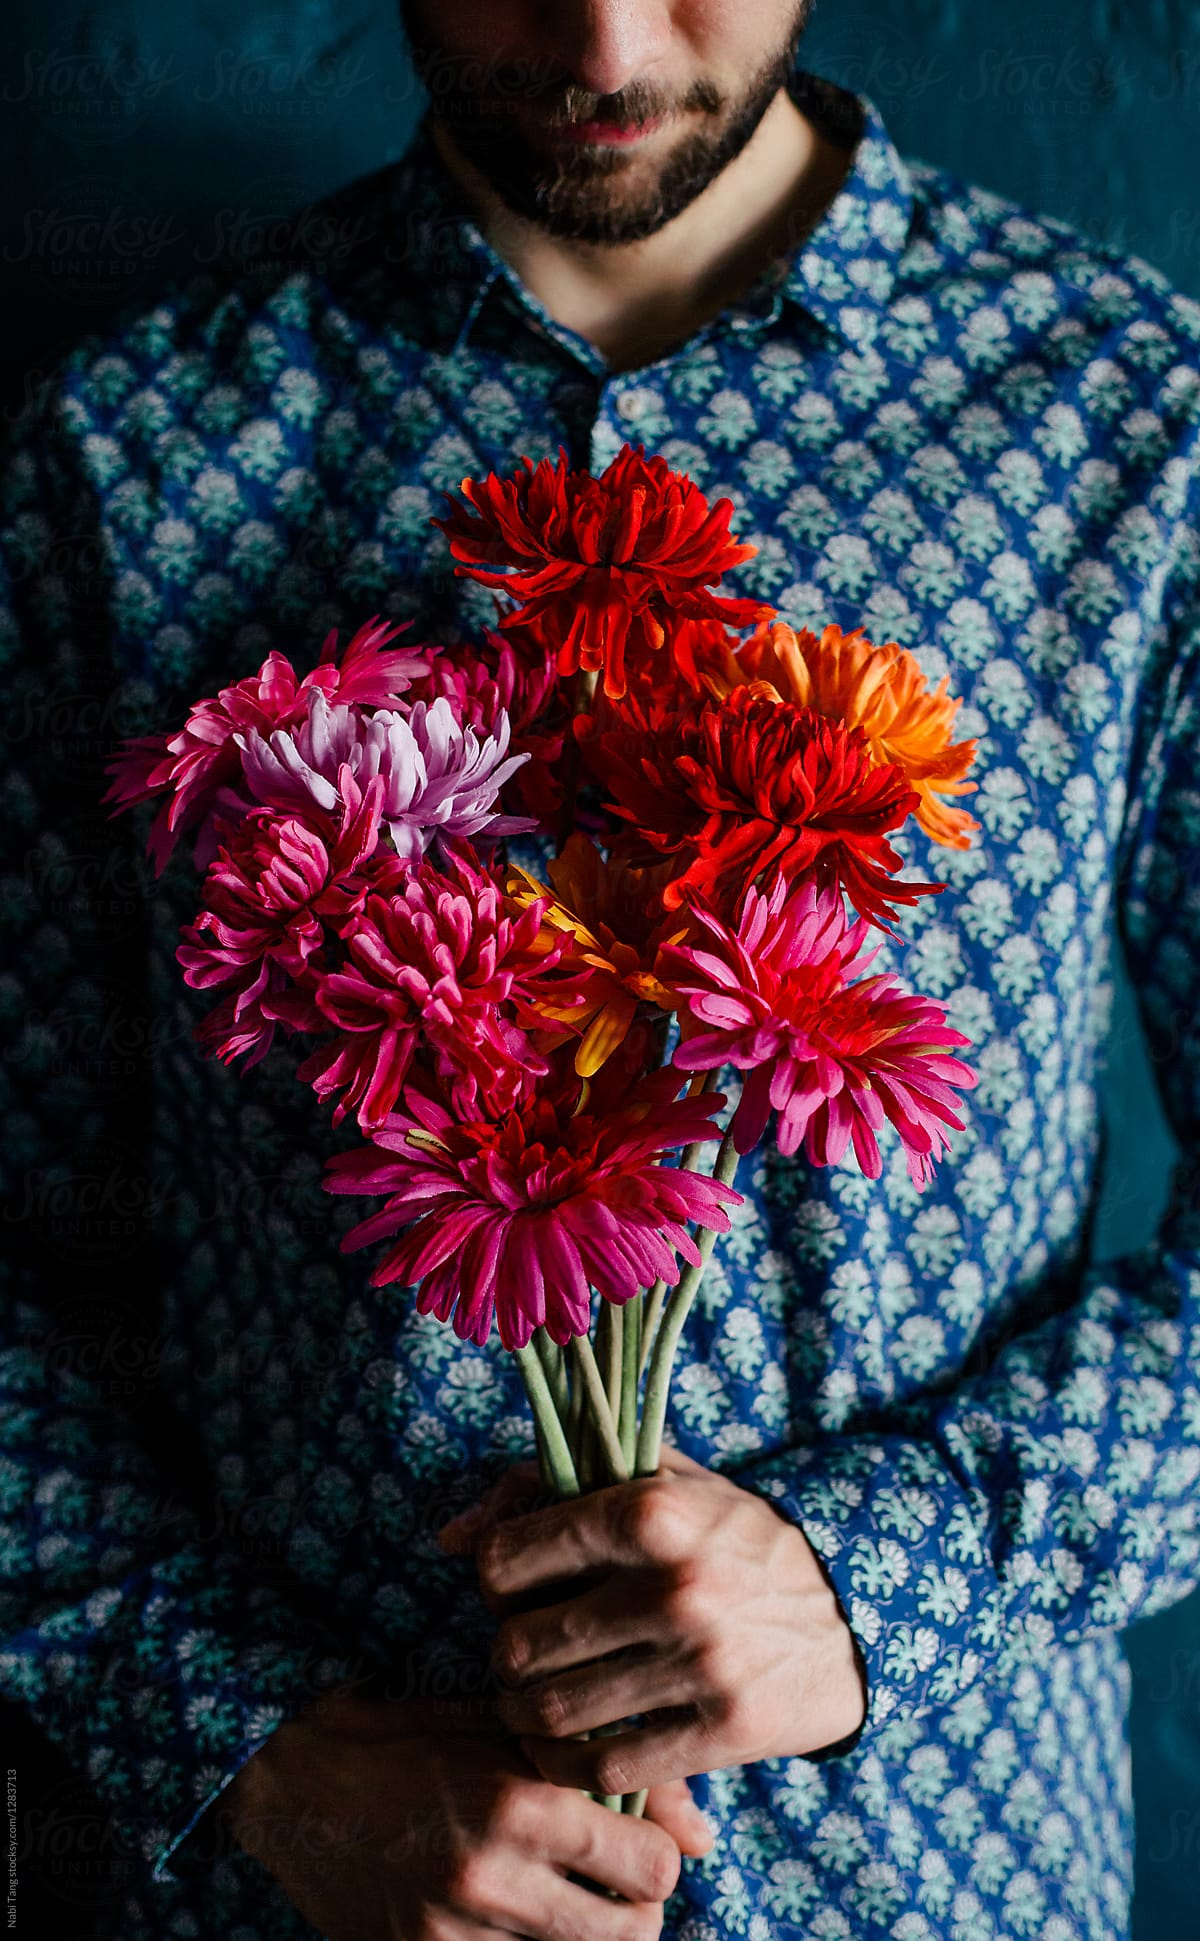 Man Holding Colorful Flower Bouquet Stocksy United